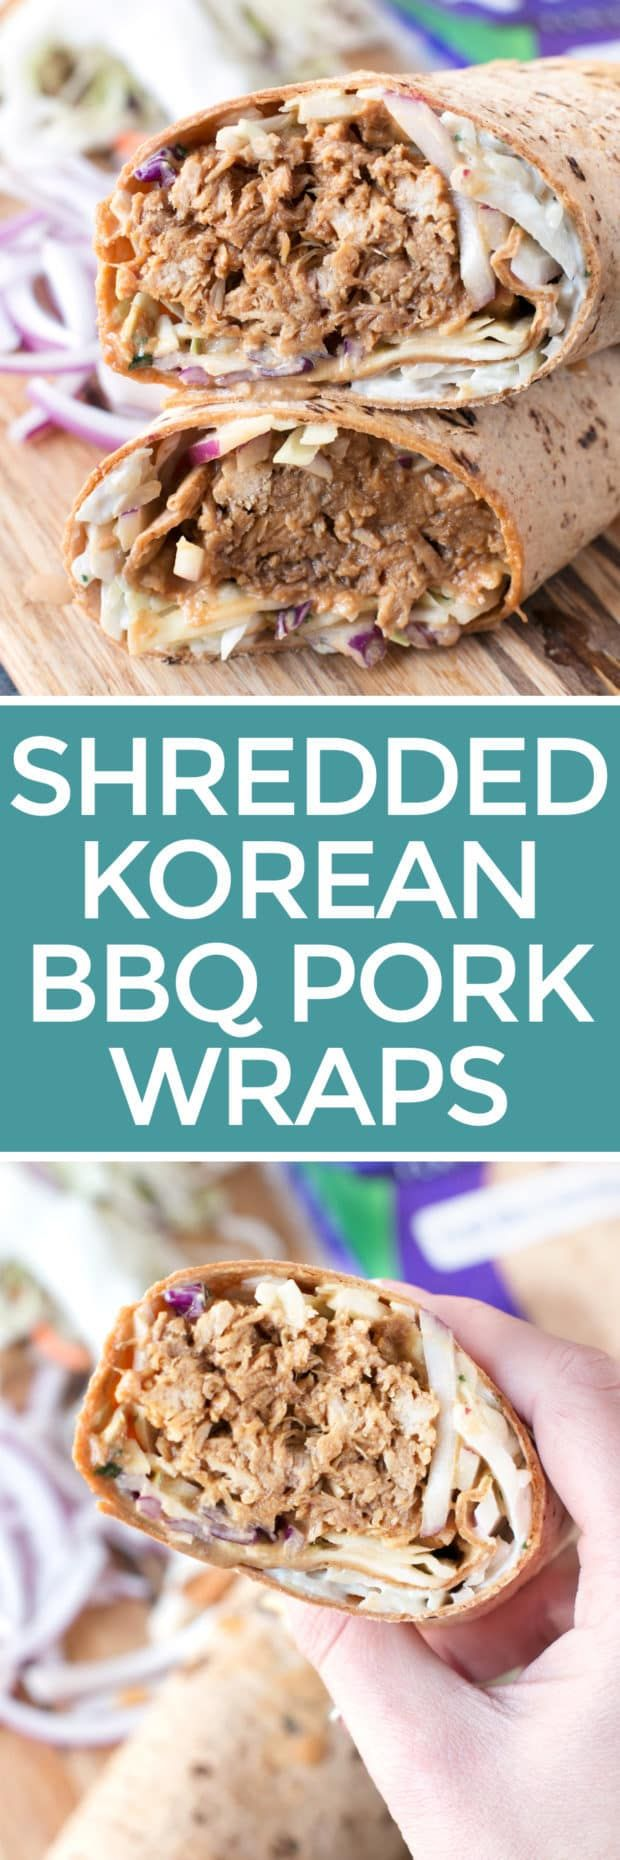 Shredded Pork Korean BBQ Wraps with Kimchi Slaw – Cake 'n Knife